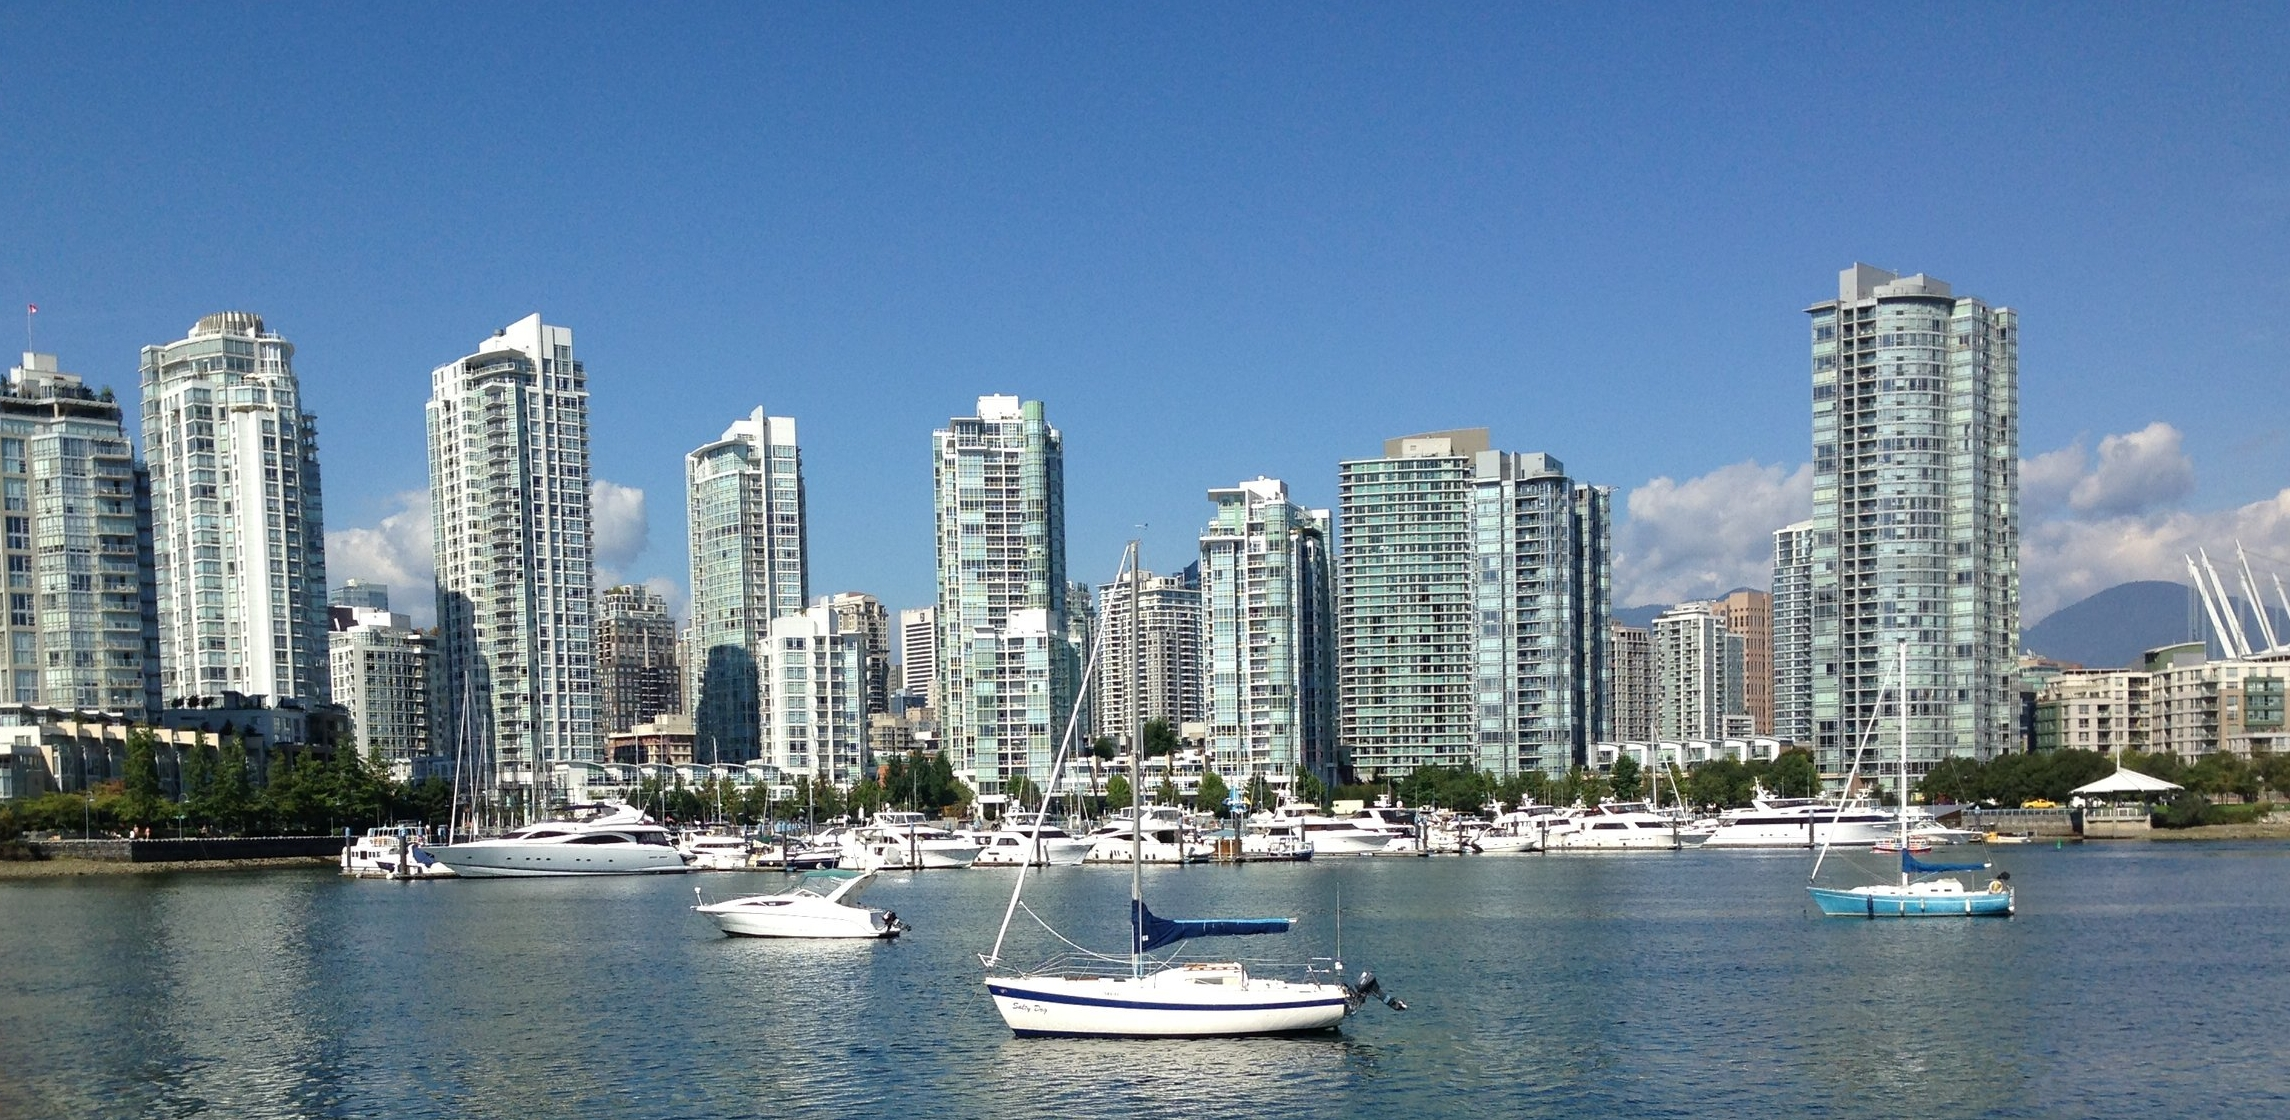 The view from the seawall near the false creek office